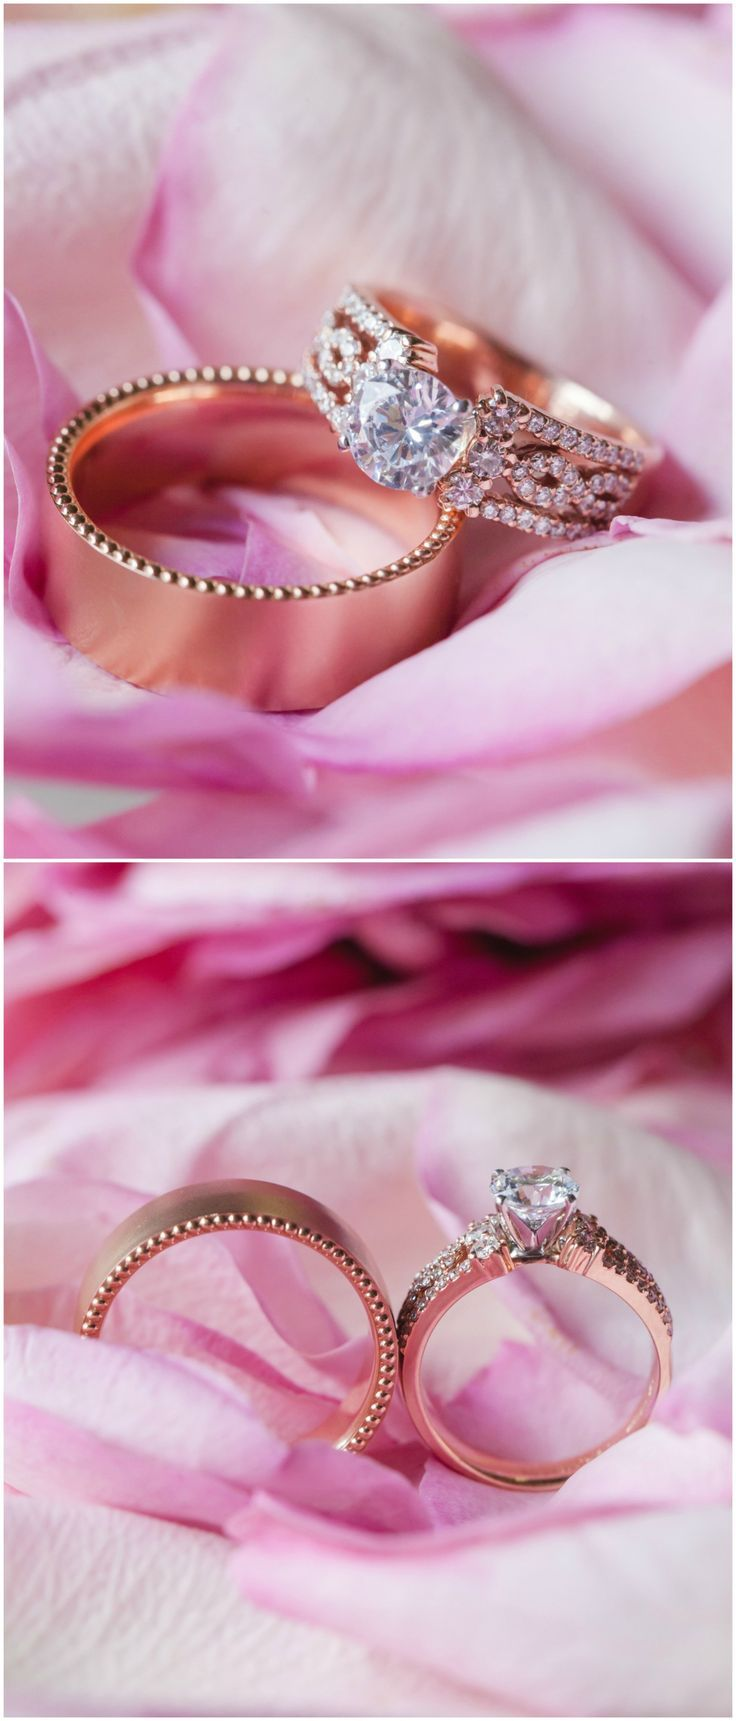 Rose gold wedding rings, round-cut diamond, stunning band // Casey ...